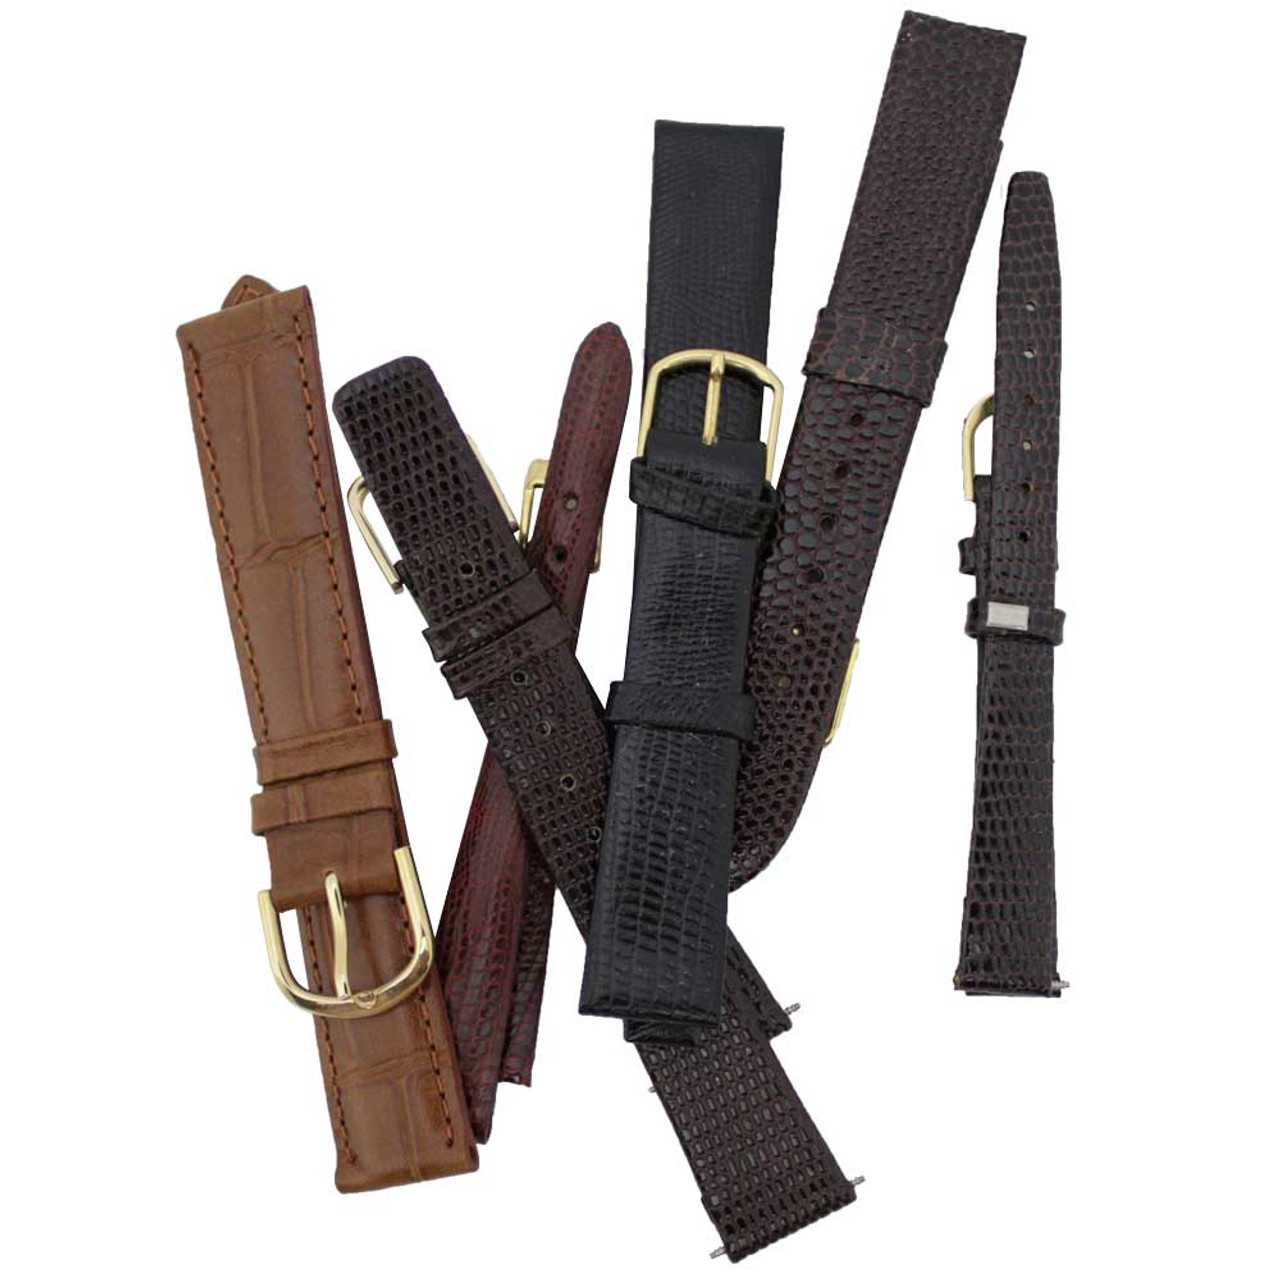 f4d674b7747 Leather Watch Strap Replacement Assortment Includes Mens and Ladies  watchbands